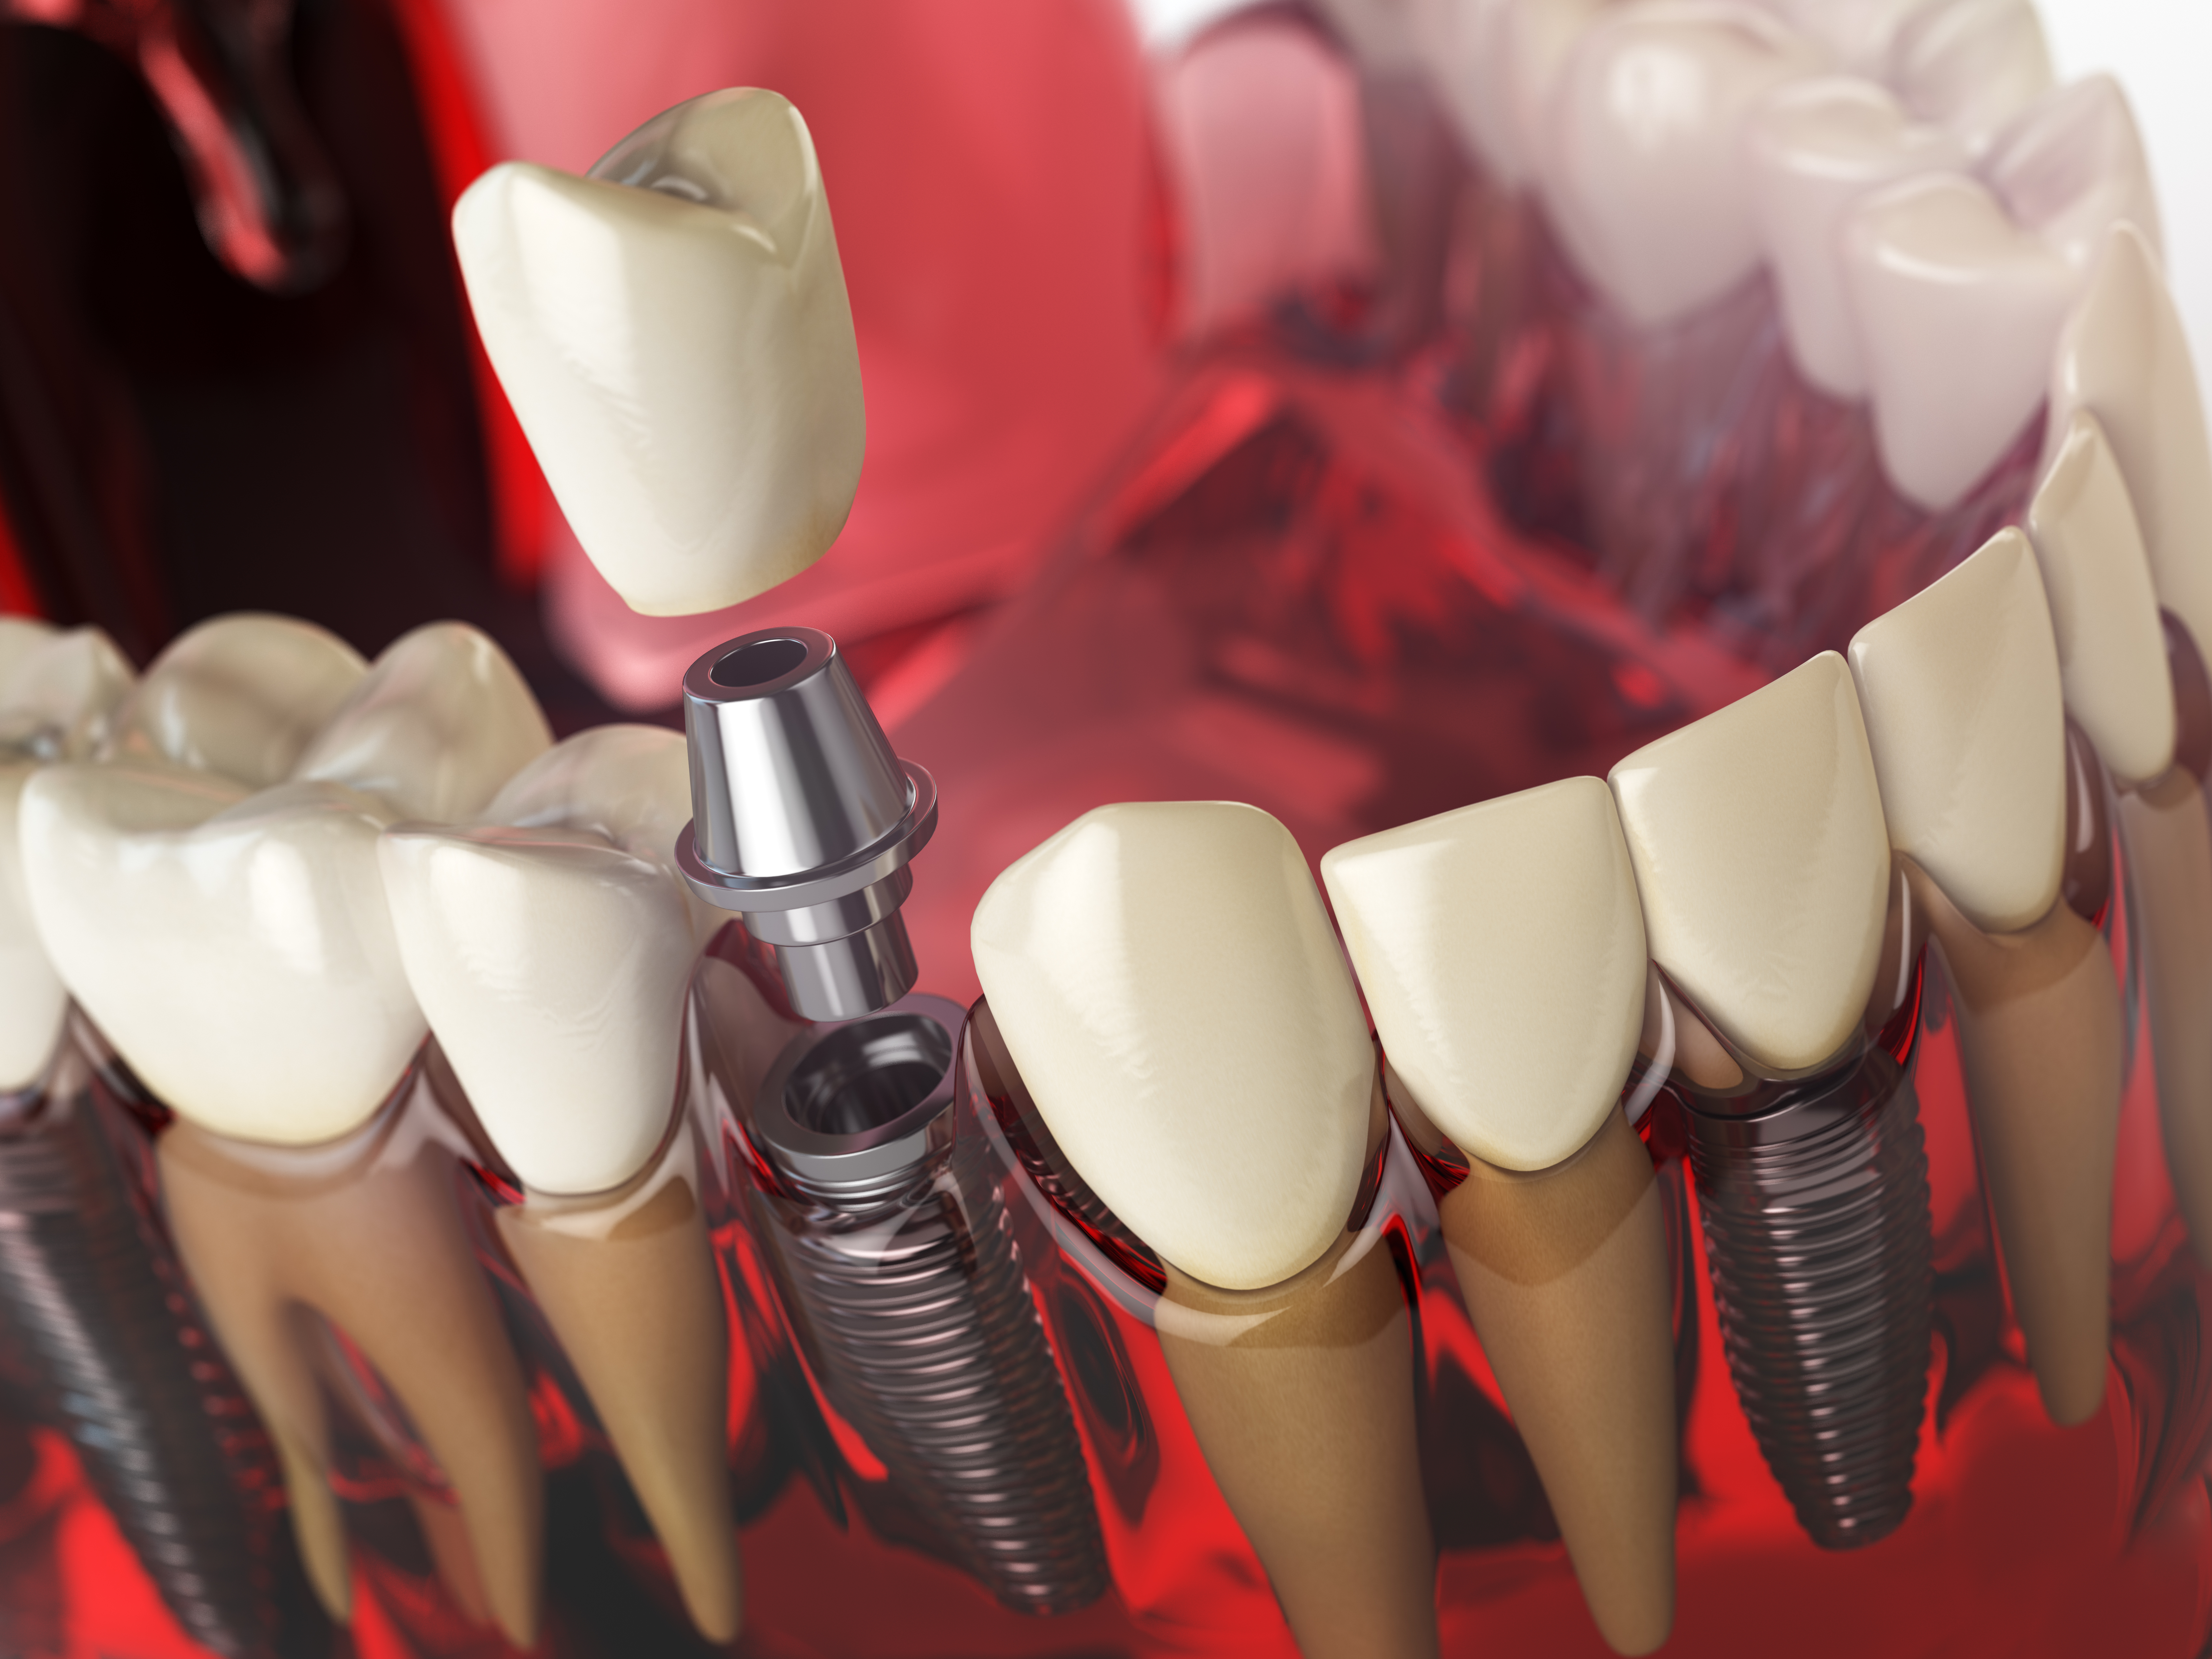 Tooth implant in the model of human teeth gums and denture